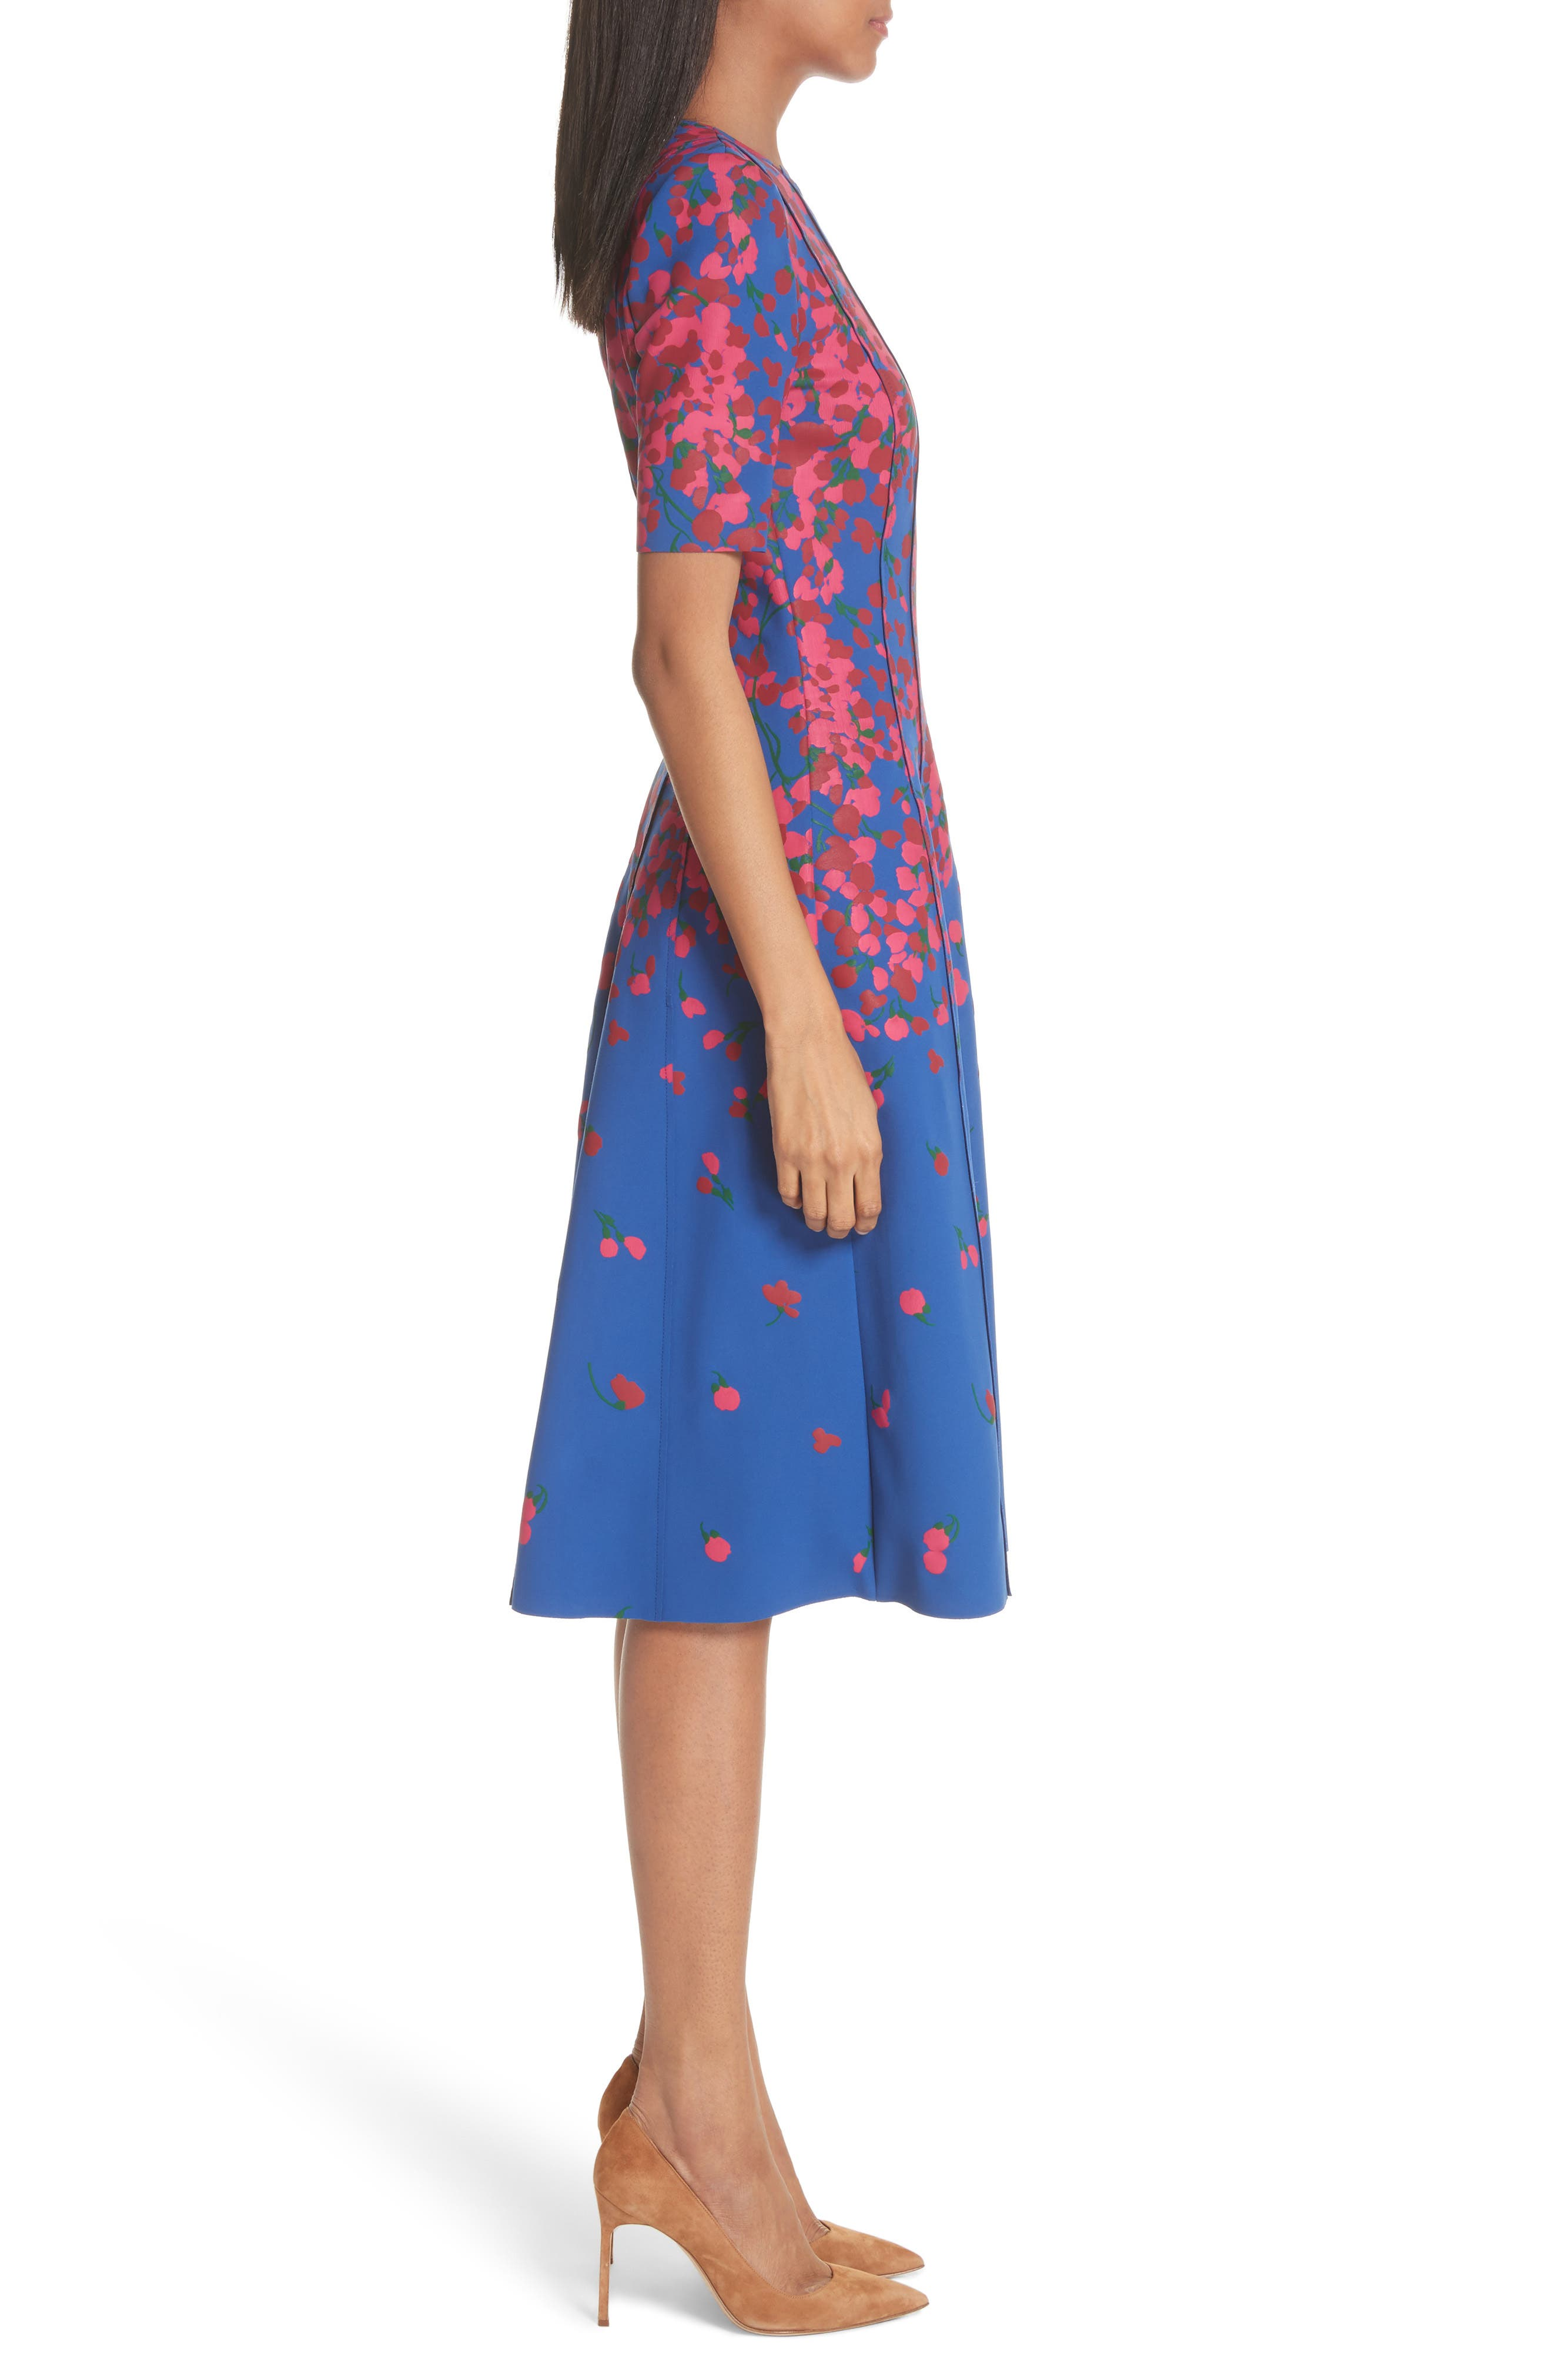 Knit Floral Print Dress,                             Alternate thumbnail 3, color,                             Persian Blue Multi